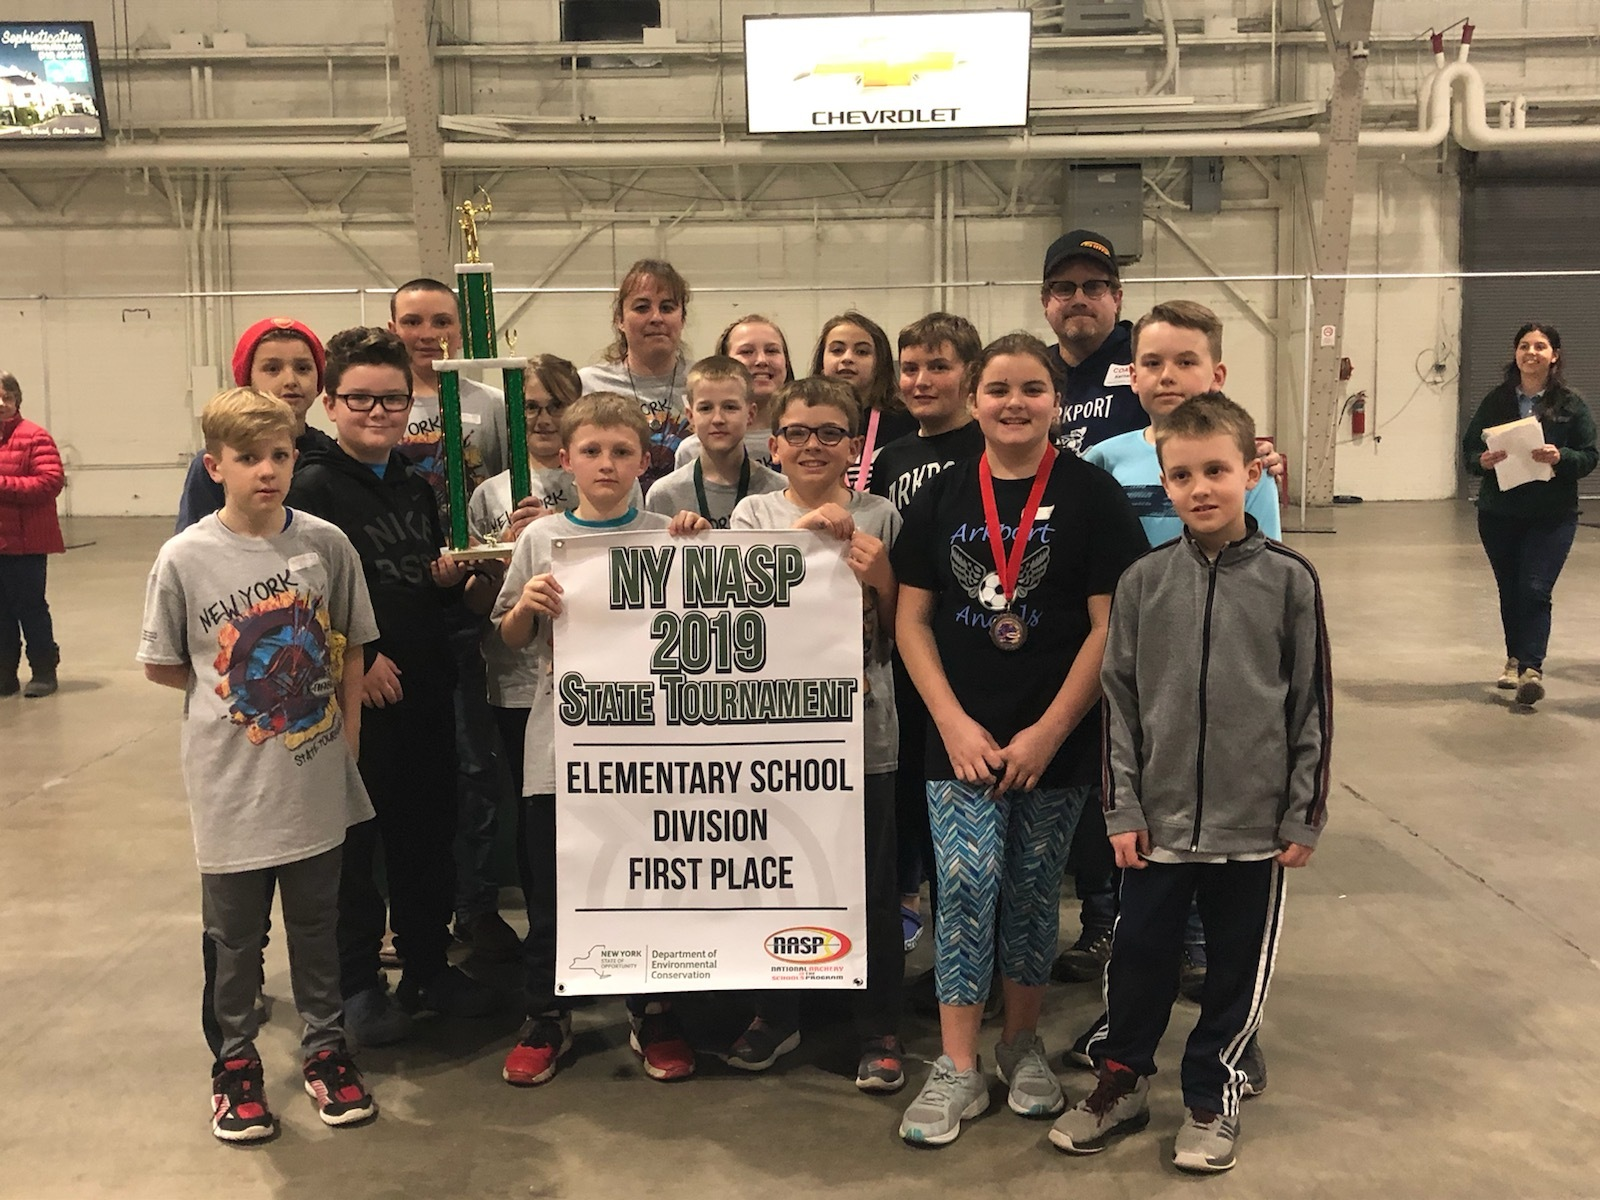 Elementary school archers pose with the tournament sign